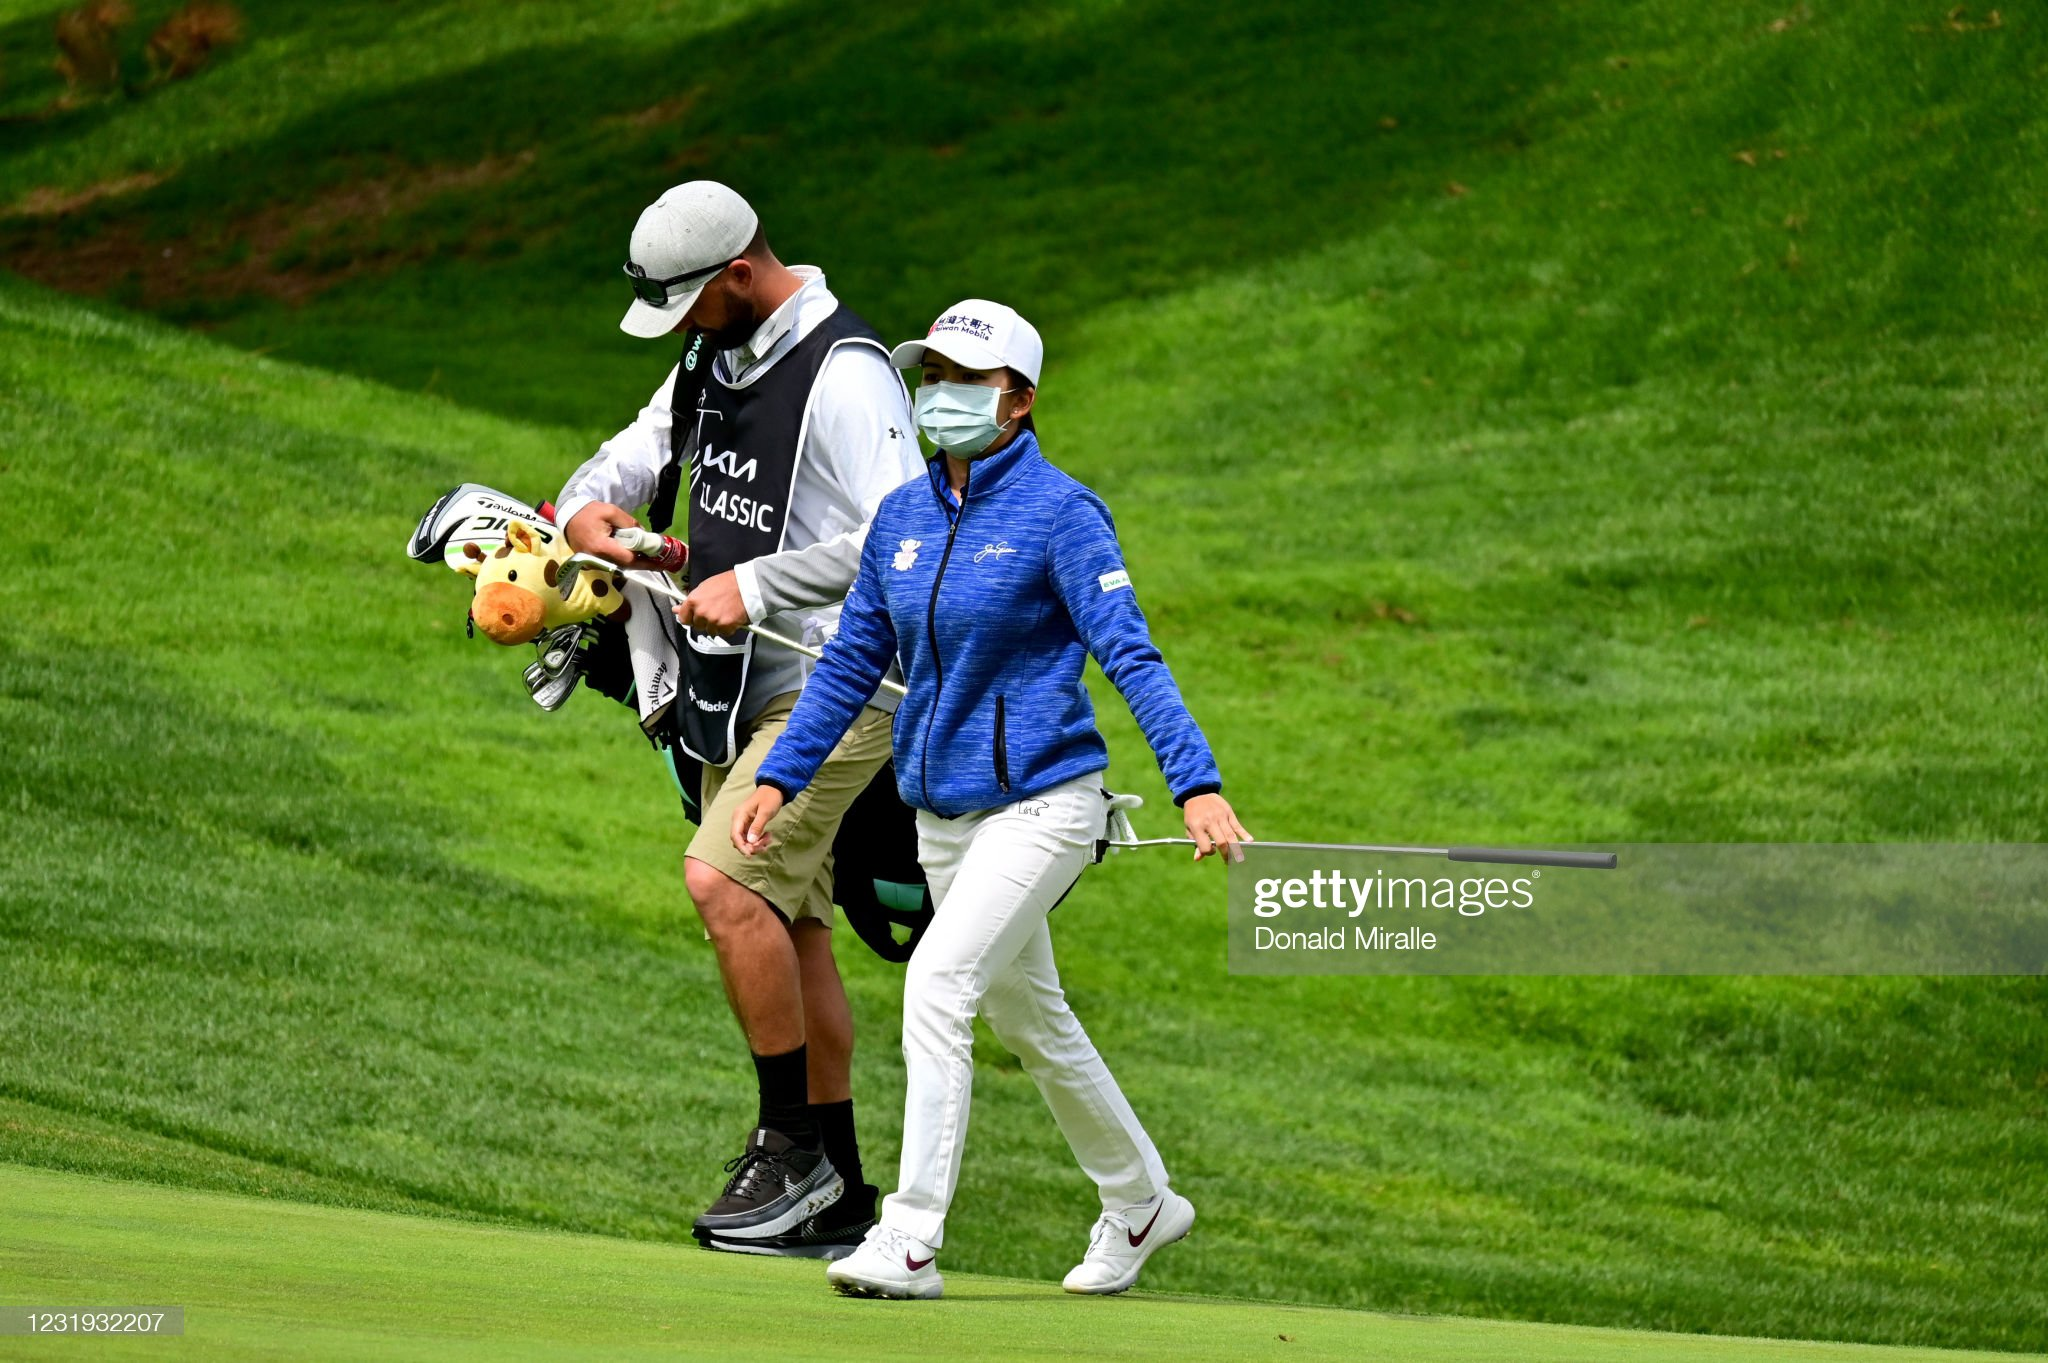 https://media.gettyimages.com/photos/weiling-hsu-of-chinese-taipei-plays-during-the-round-one-of-the-kia-picture-id1231932207?s=2048x2048